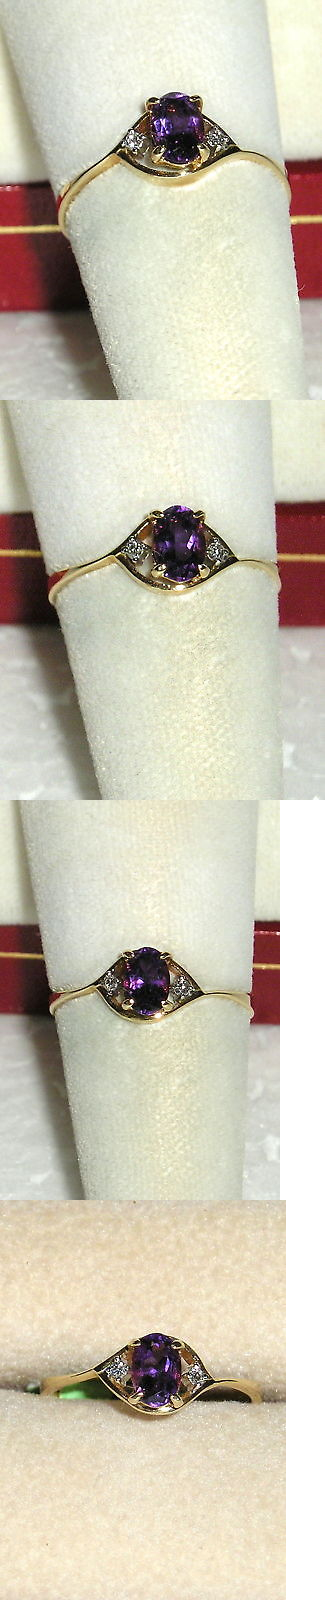 Rings 165044: Solid 14K Gold Amethyst Diamond Ring BUY IT NOW ONLY: $130.0